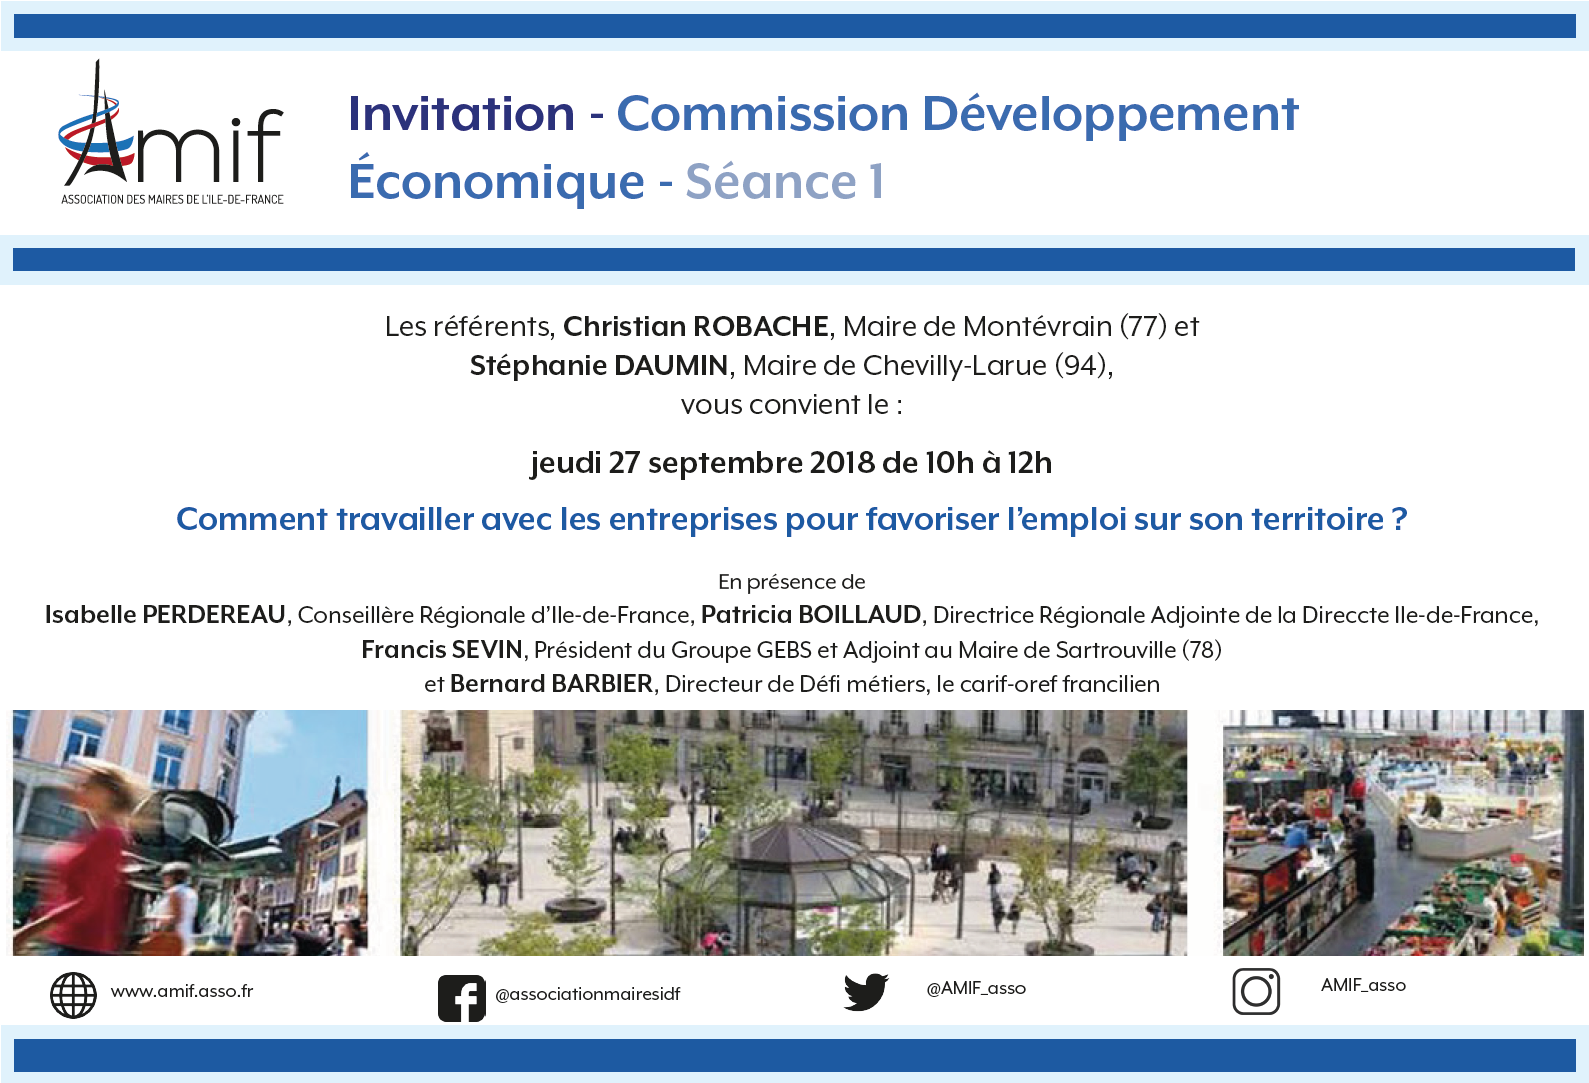 CommissionDeveloppementEconomiqueSeance127septembre2018v3